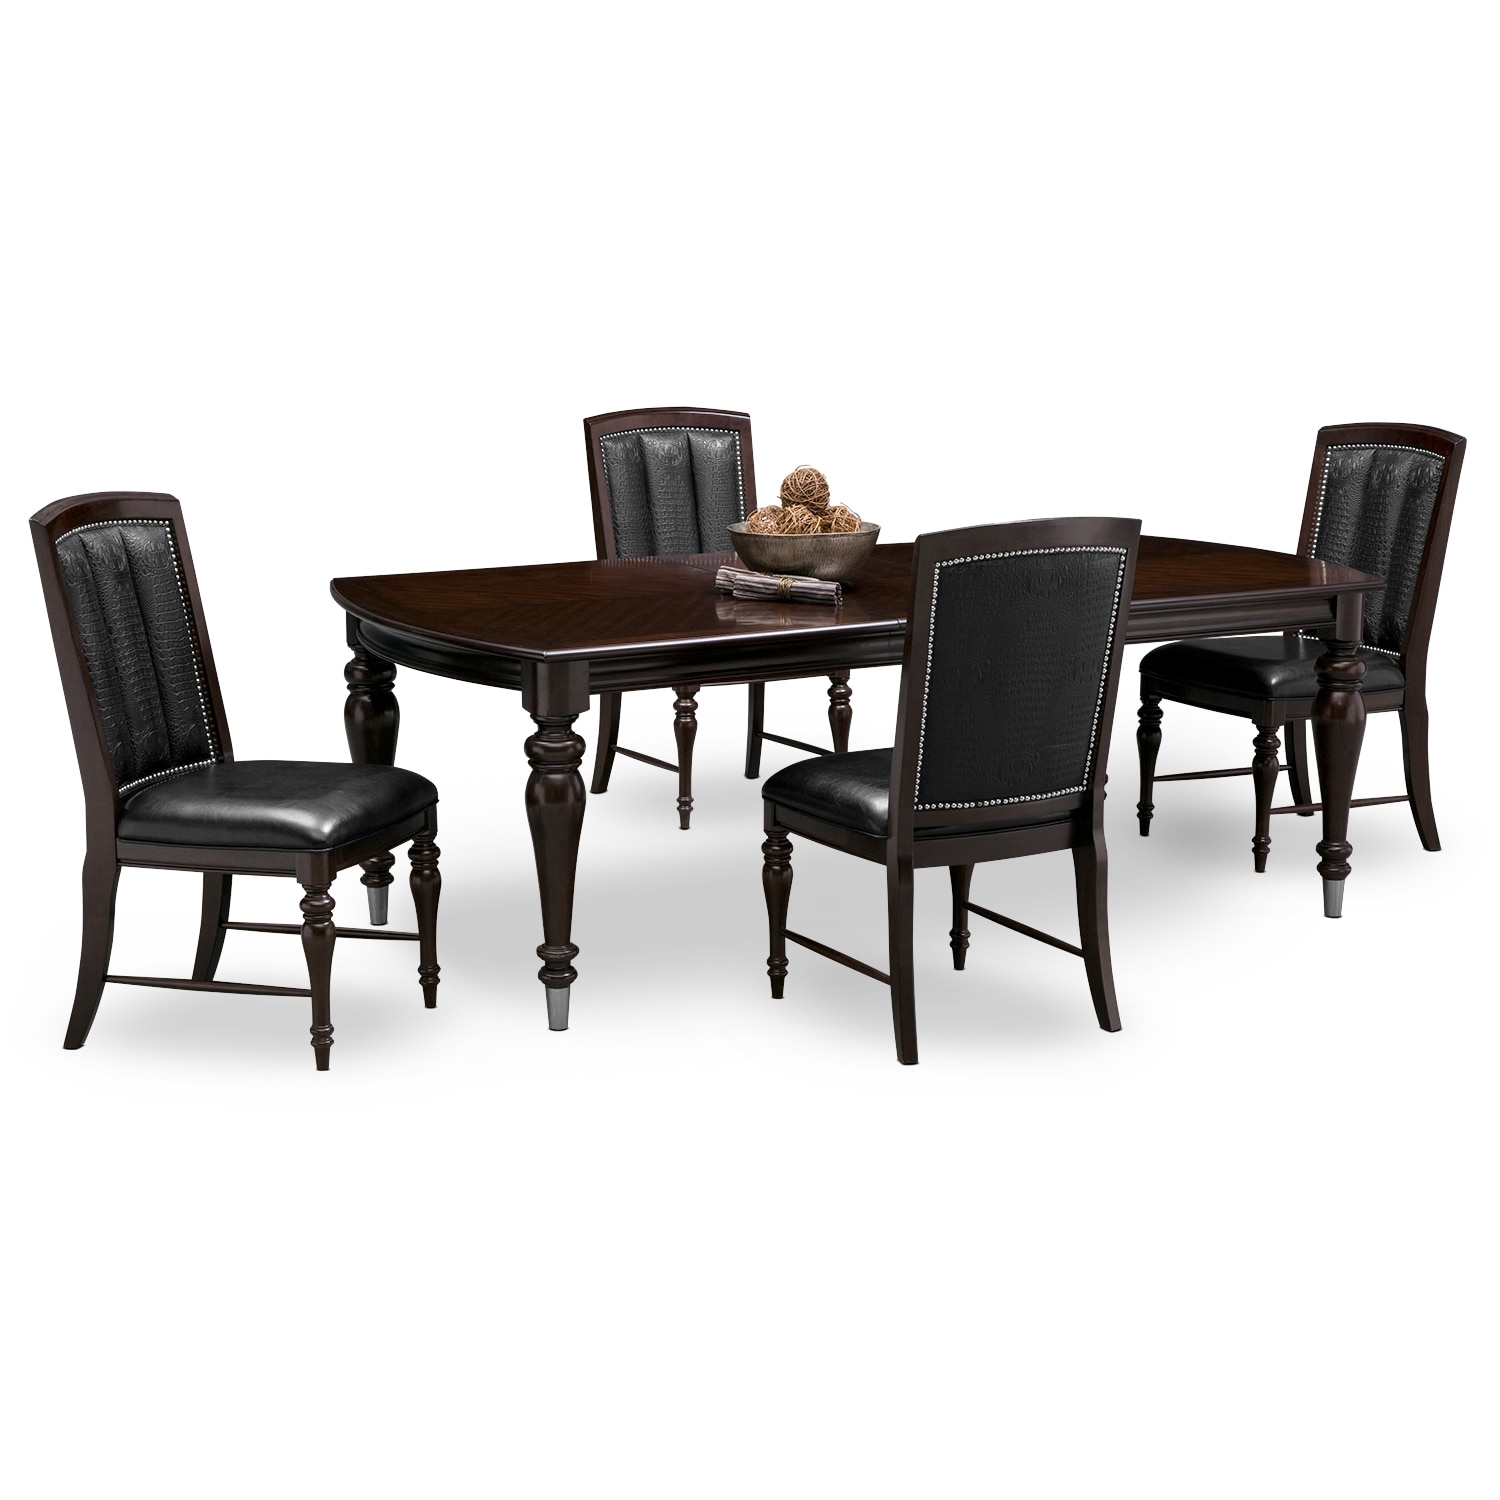 The Esquire Collection American Signature Furniture